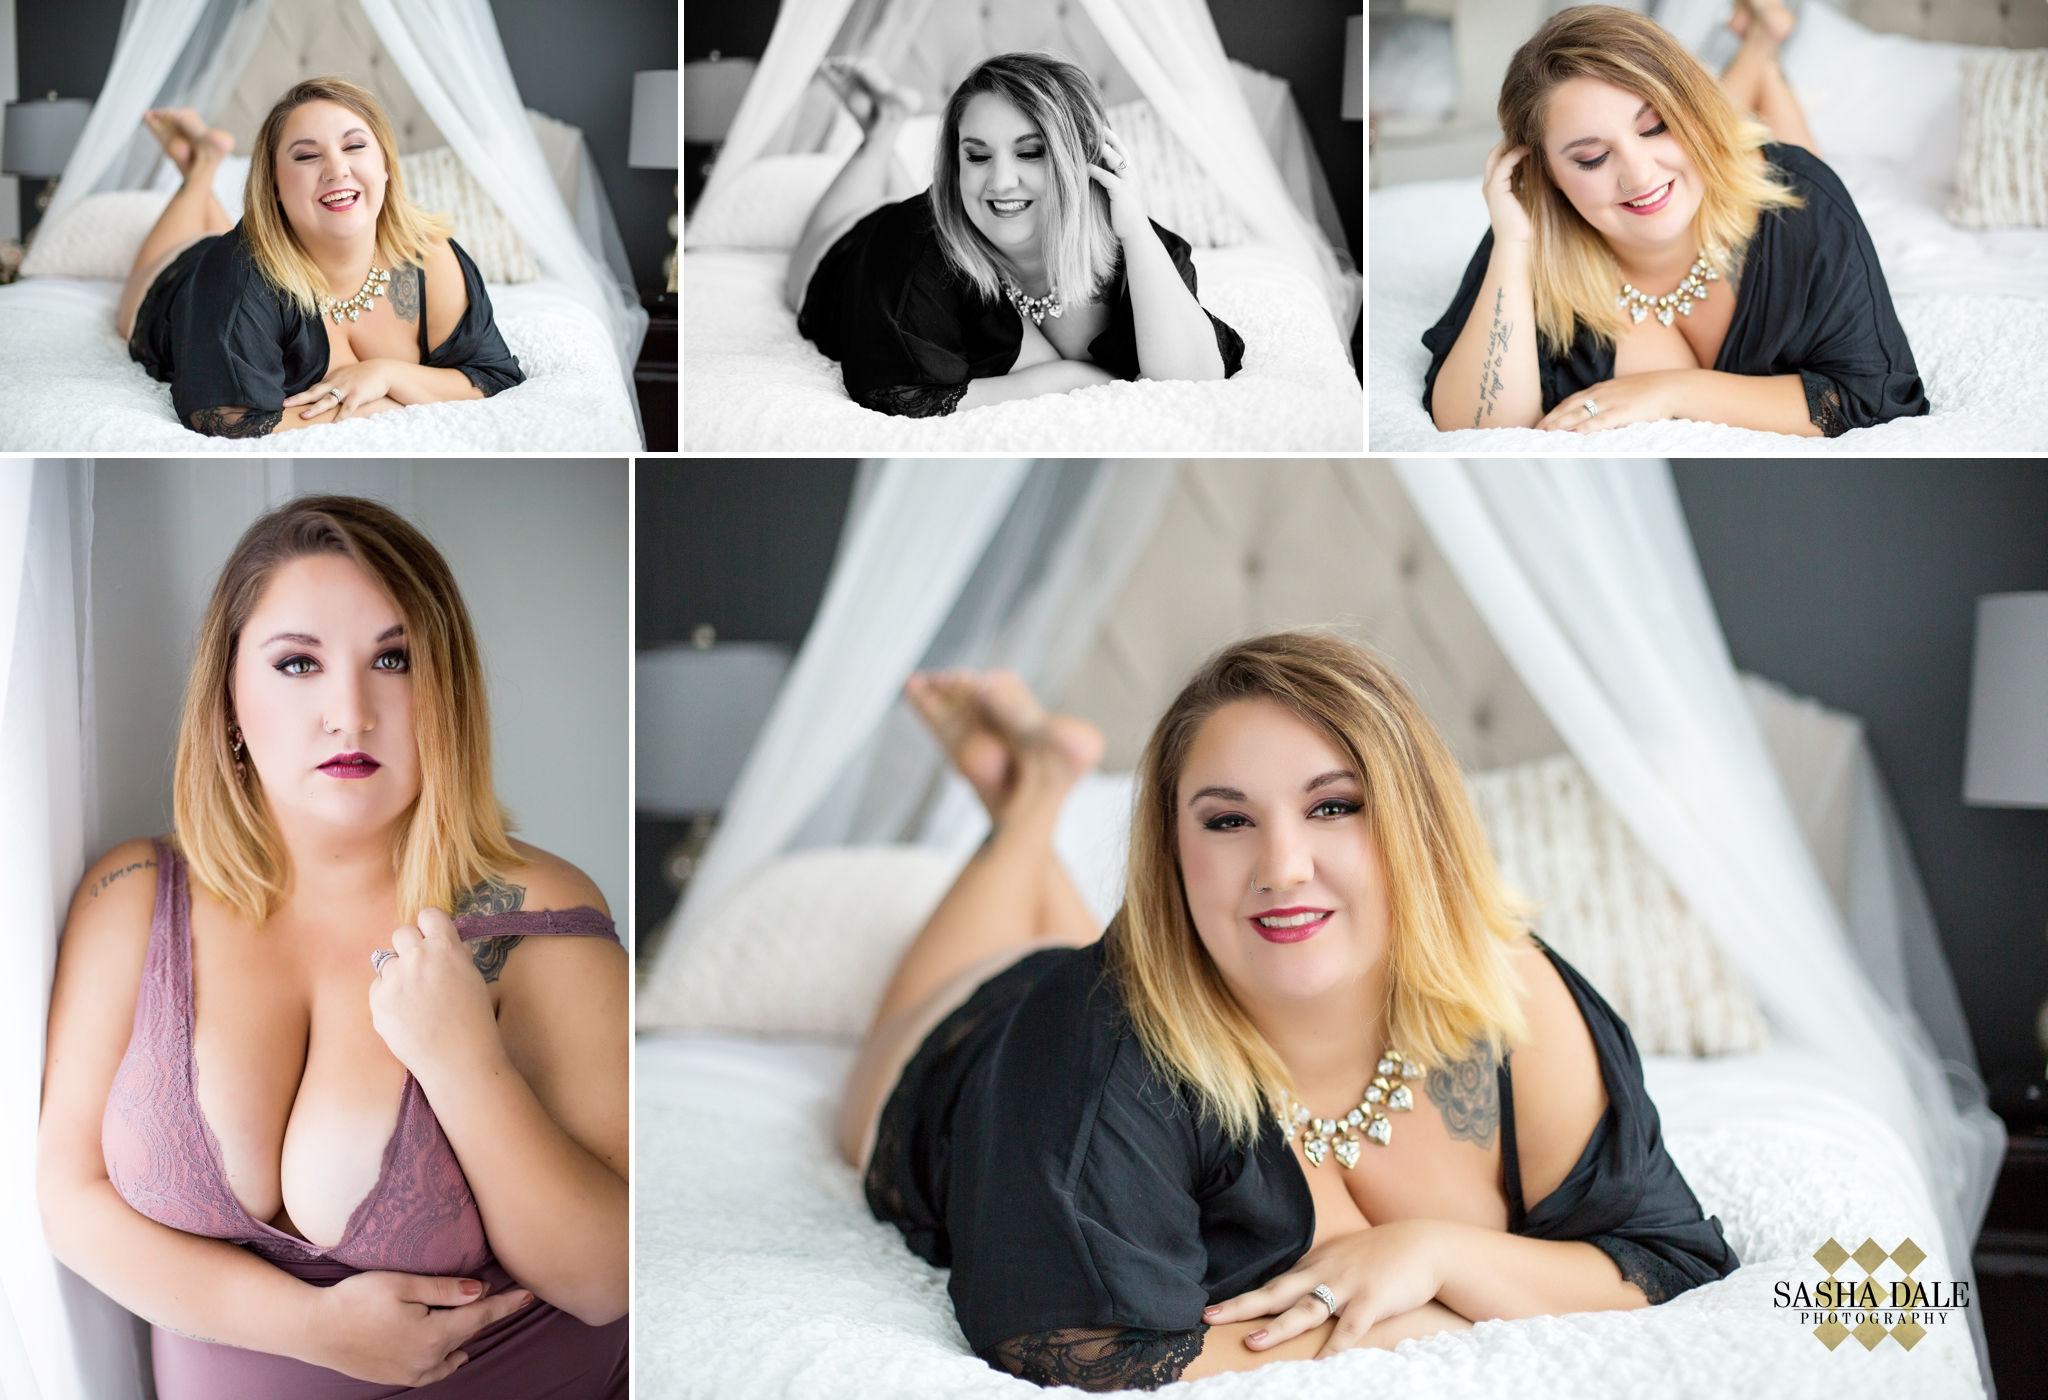 Sasha Dale Photography, curvy girl boudoir, boudoir photography, military spouse